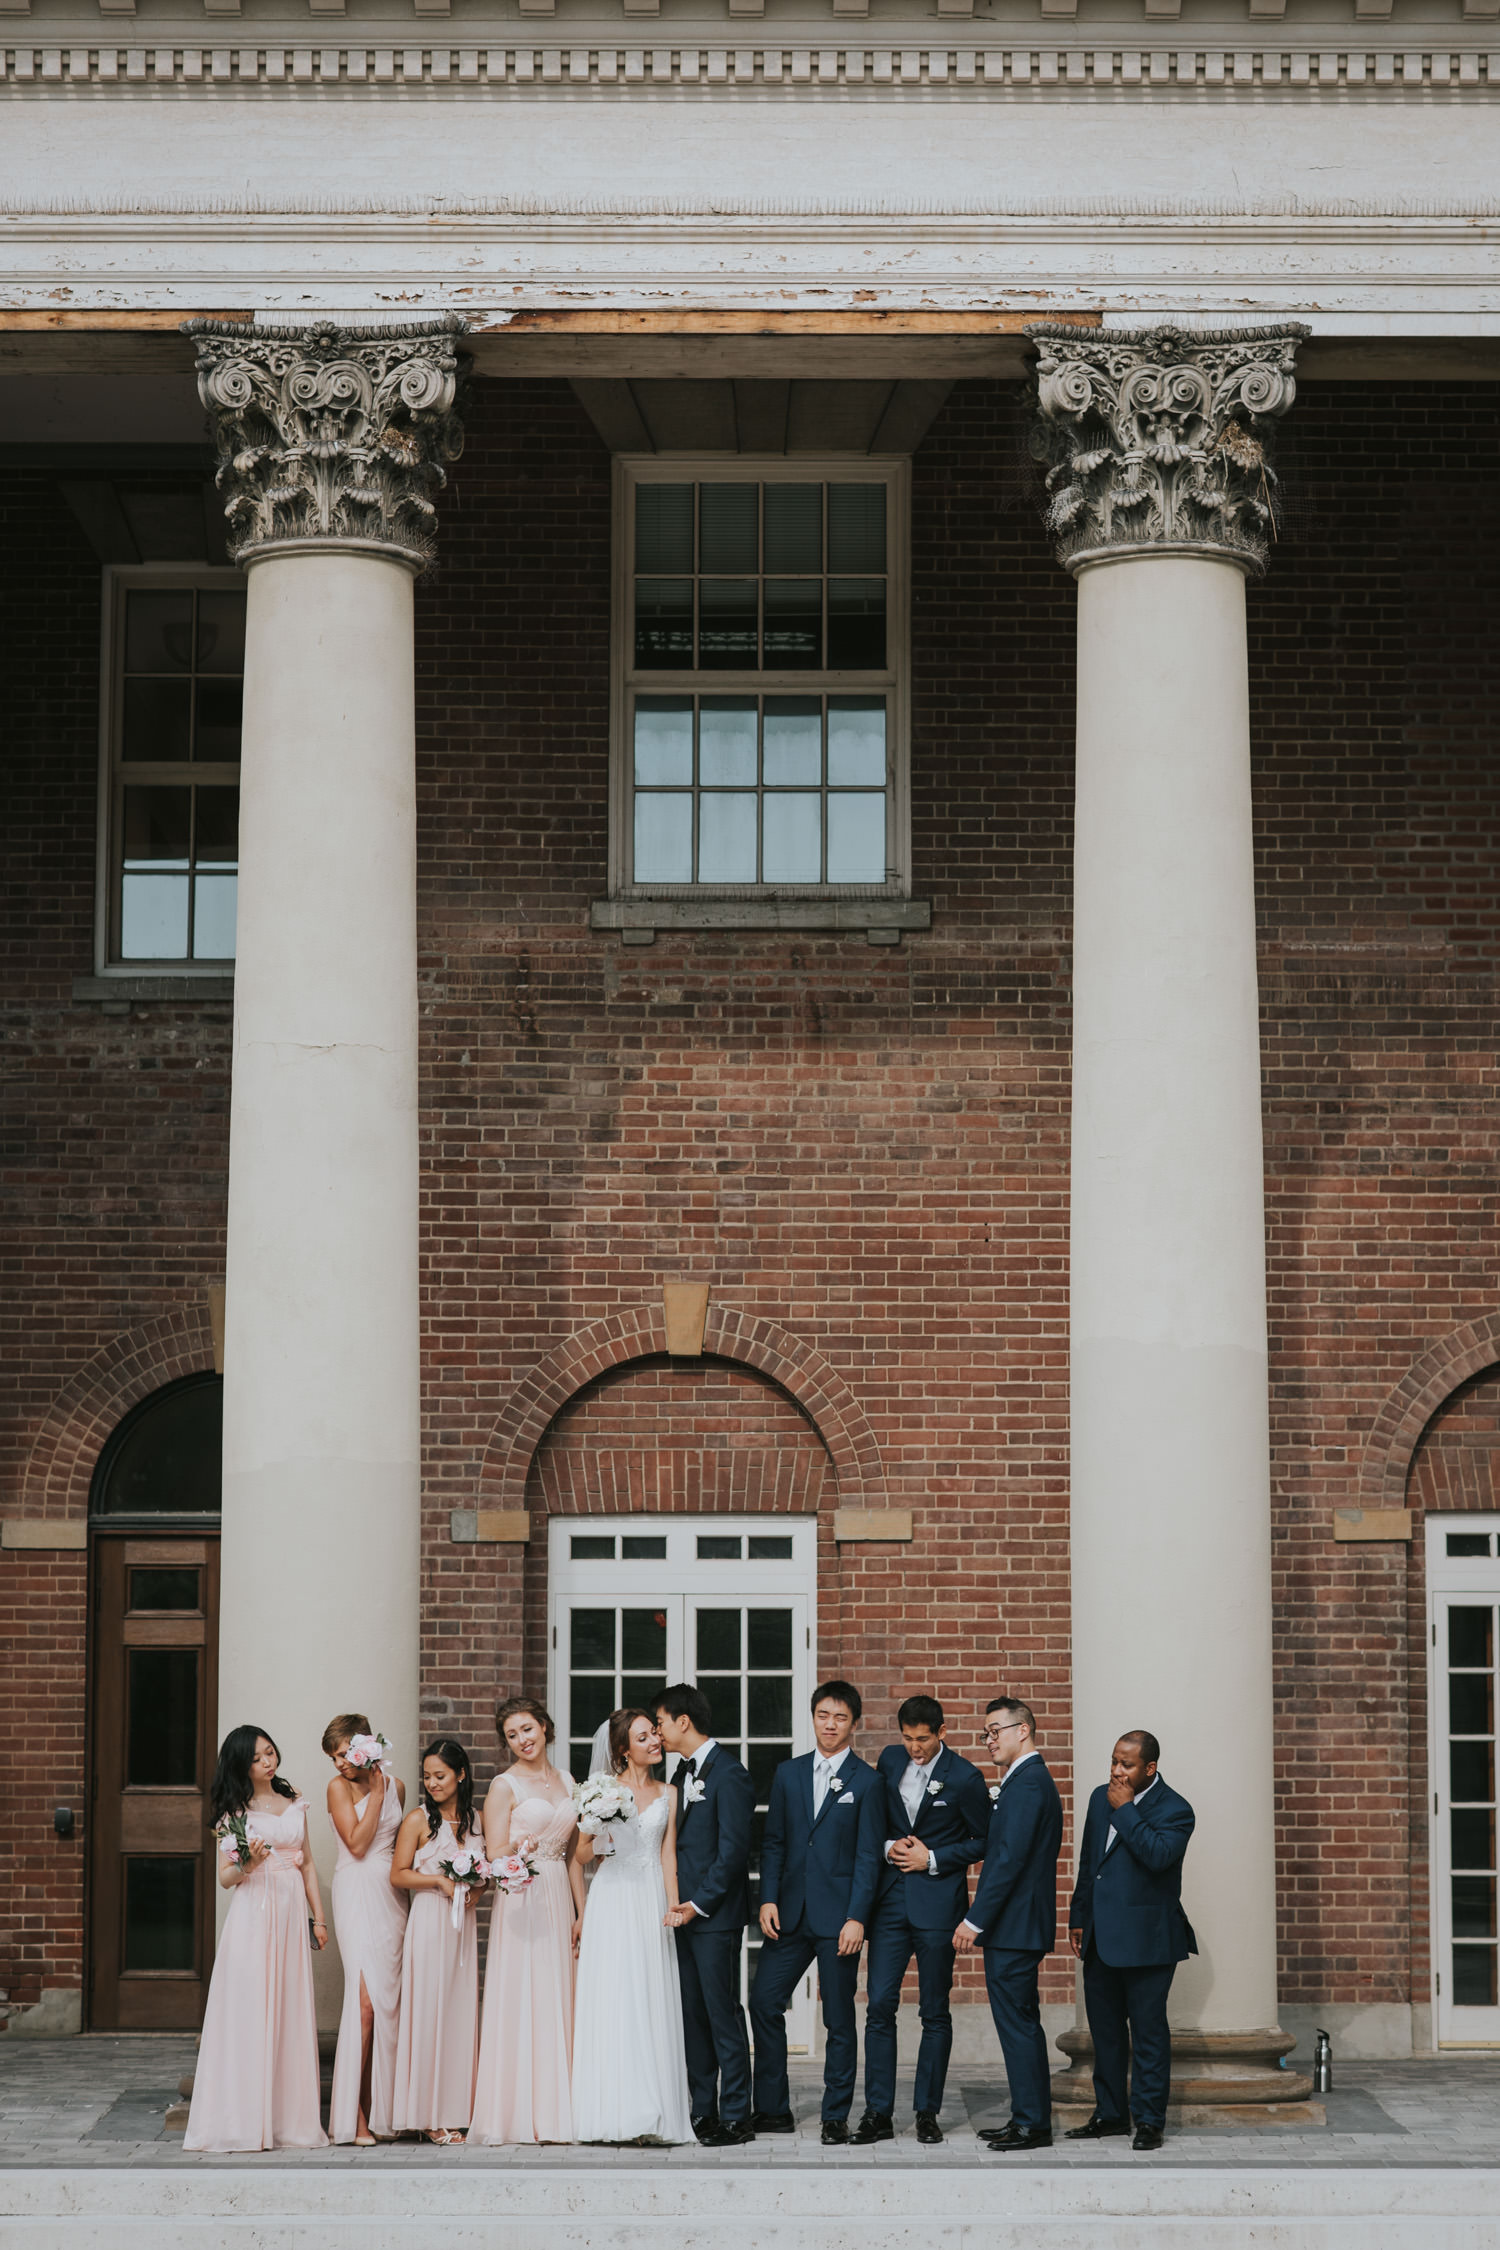 Fun Wedding Party Photo at the University of Toronto